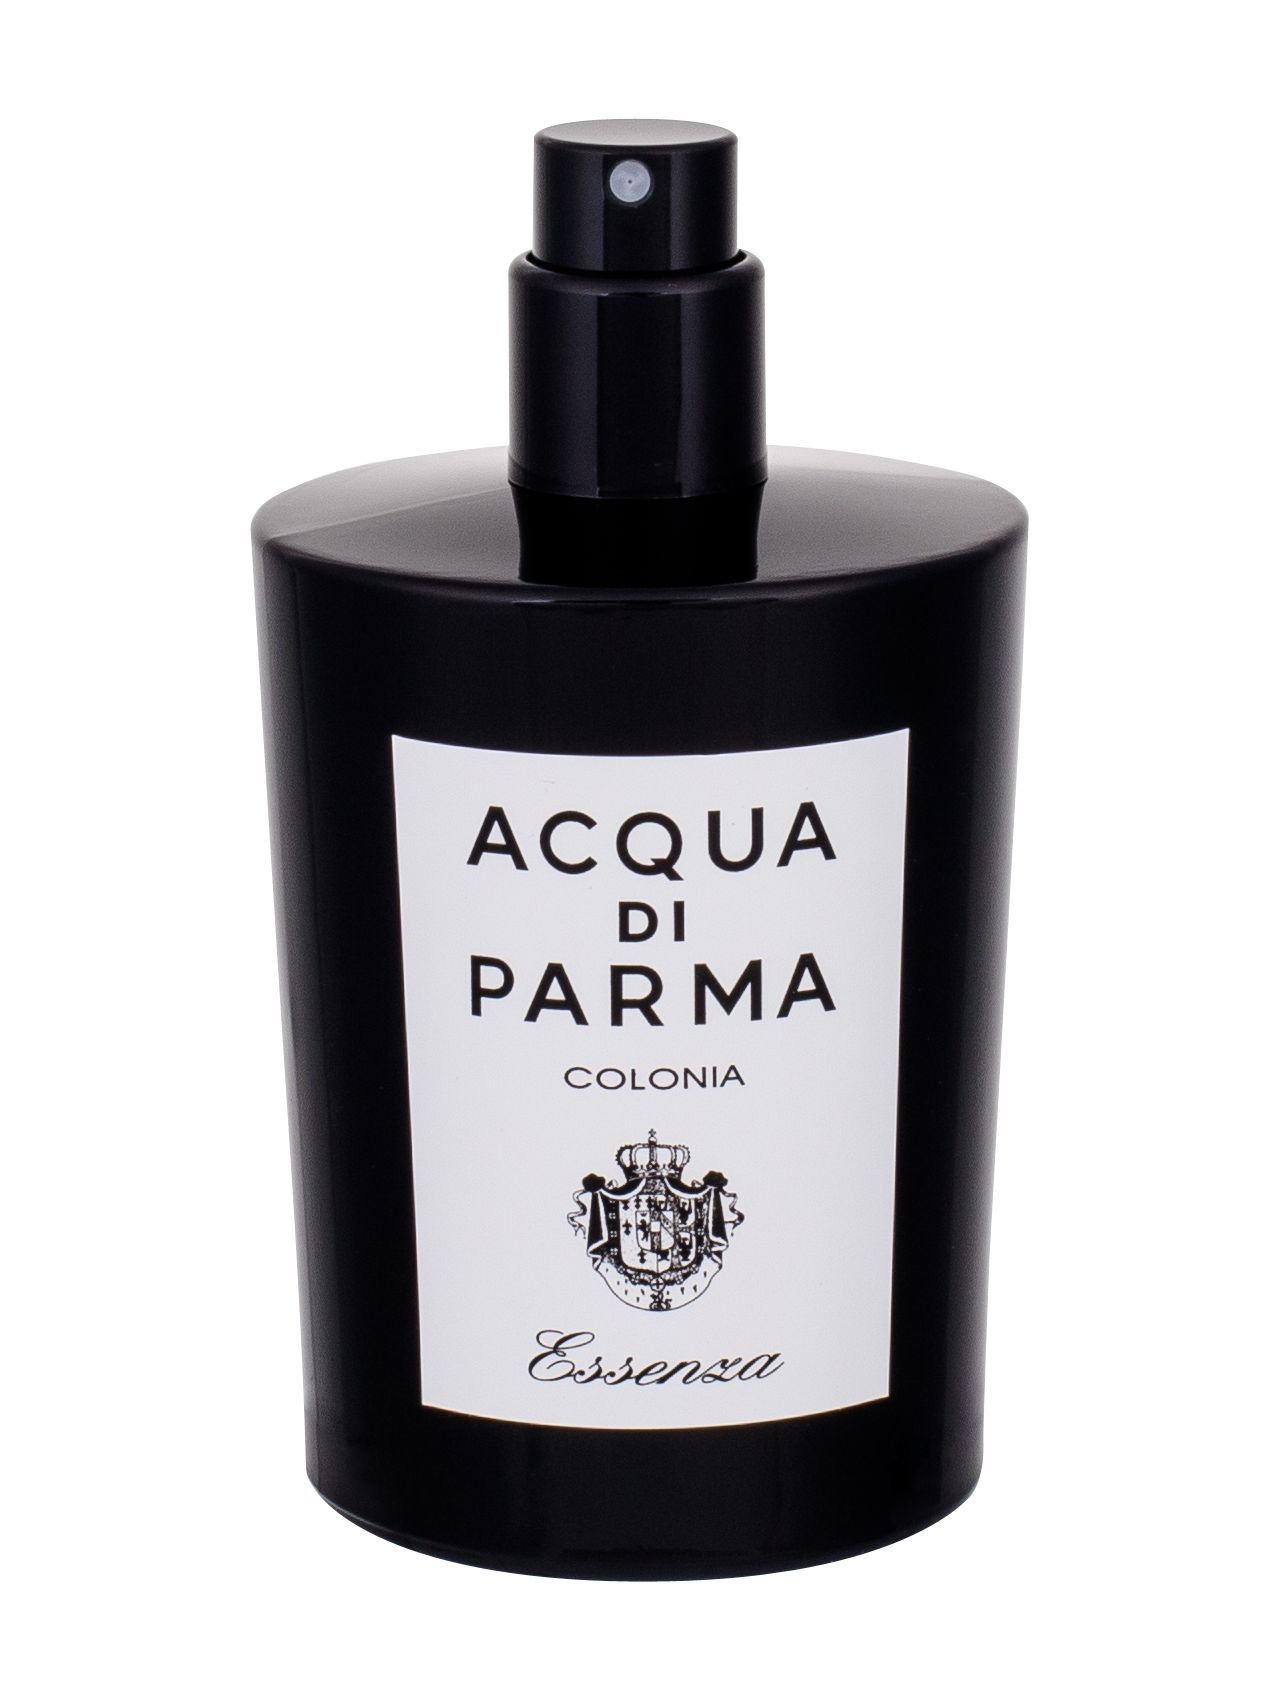 Acqua di Parma Colonia Essenza Cologne 100ml